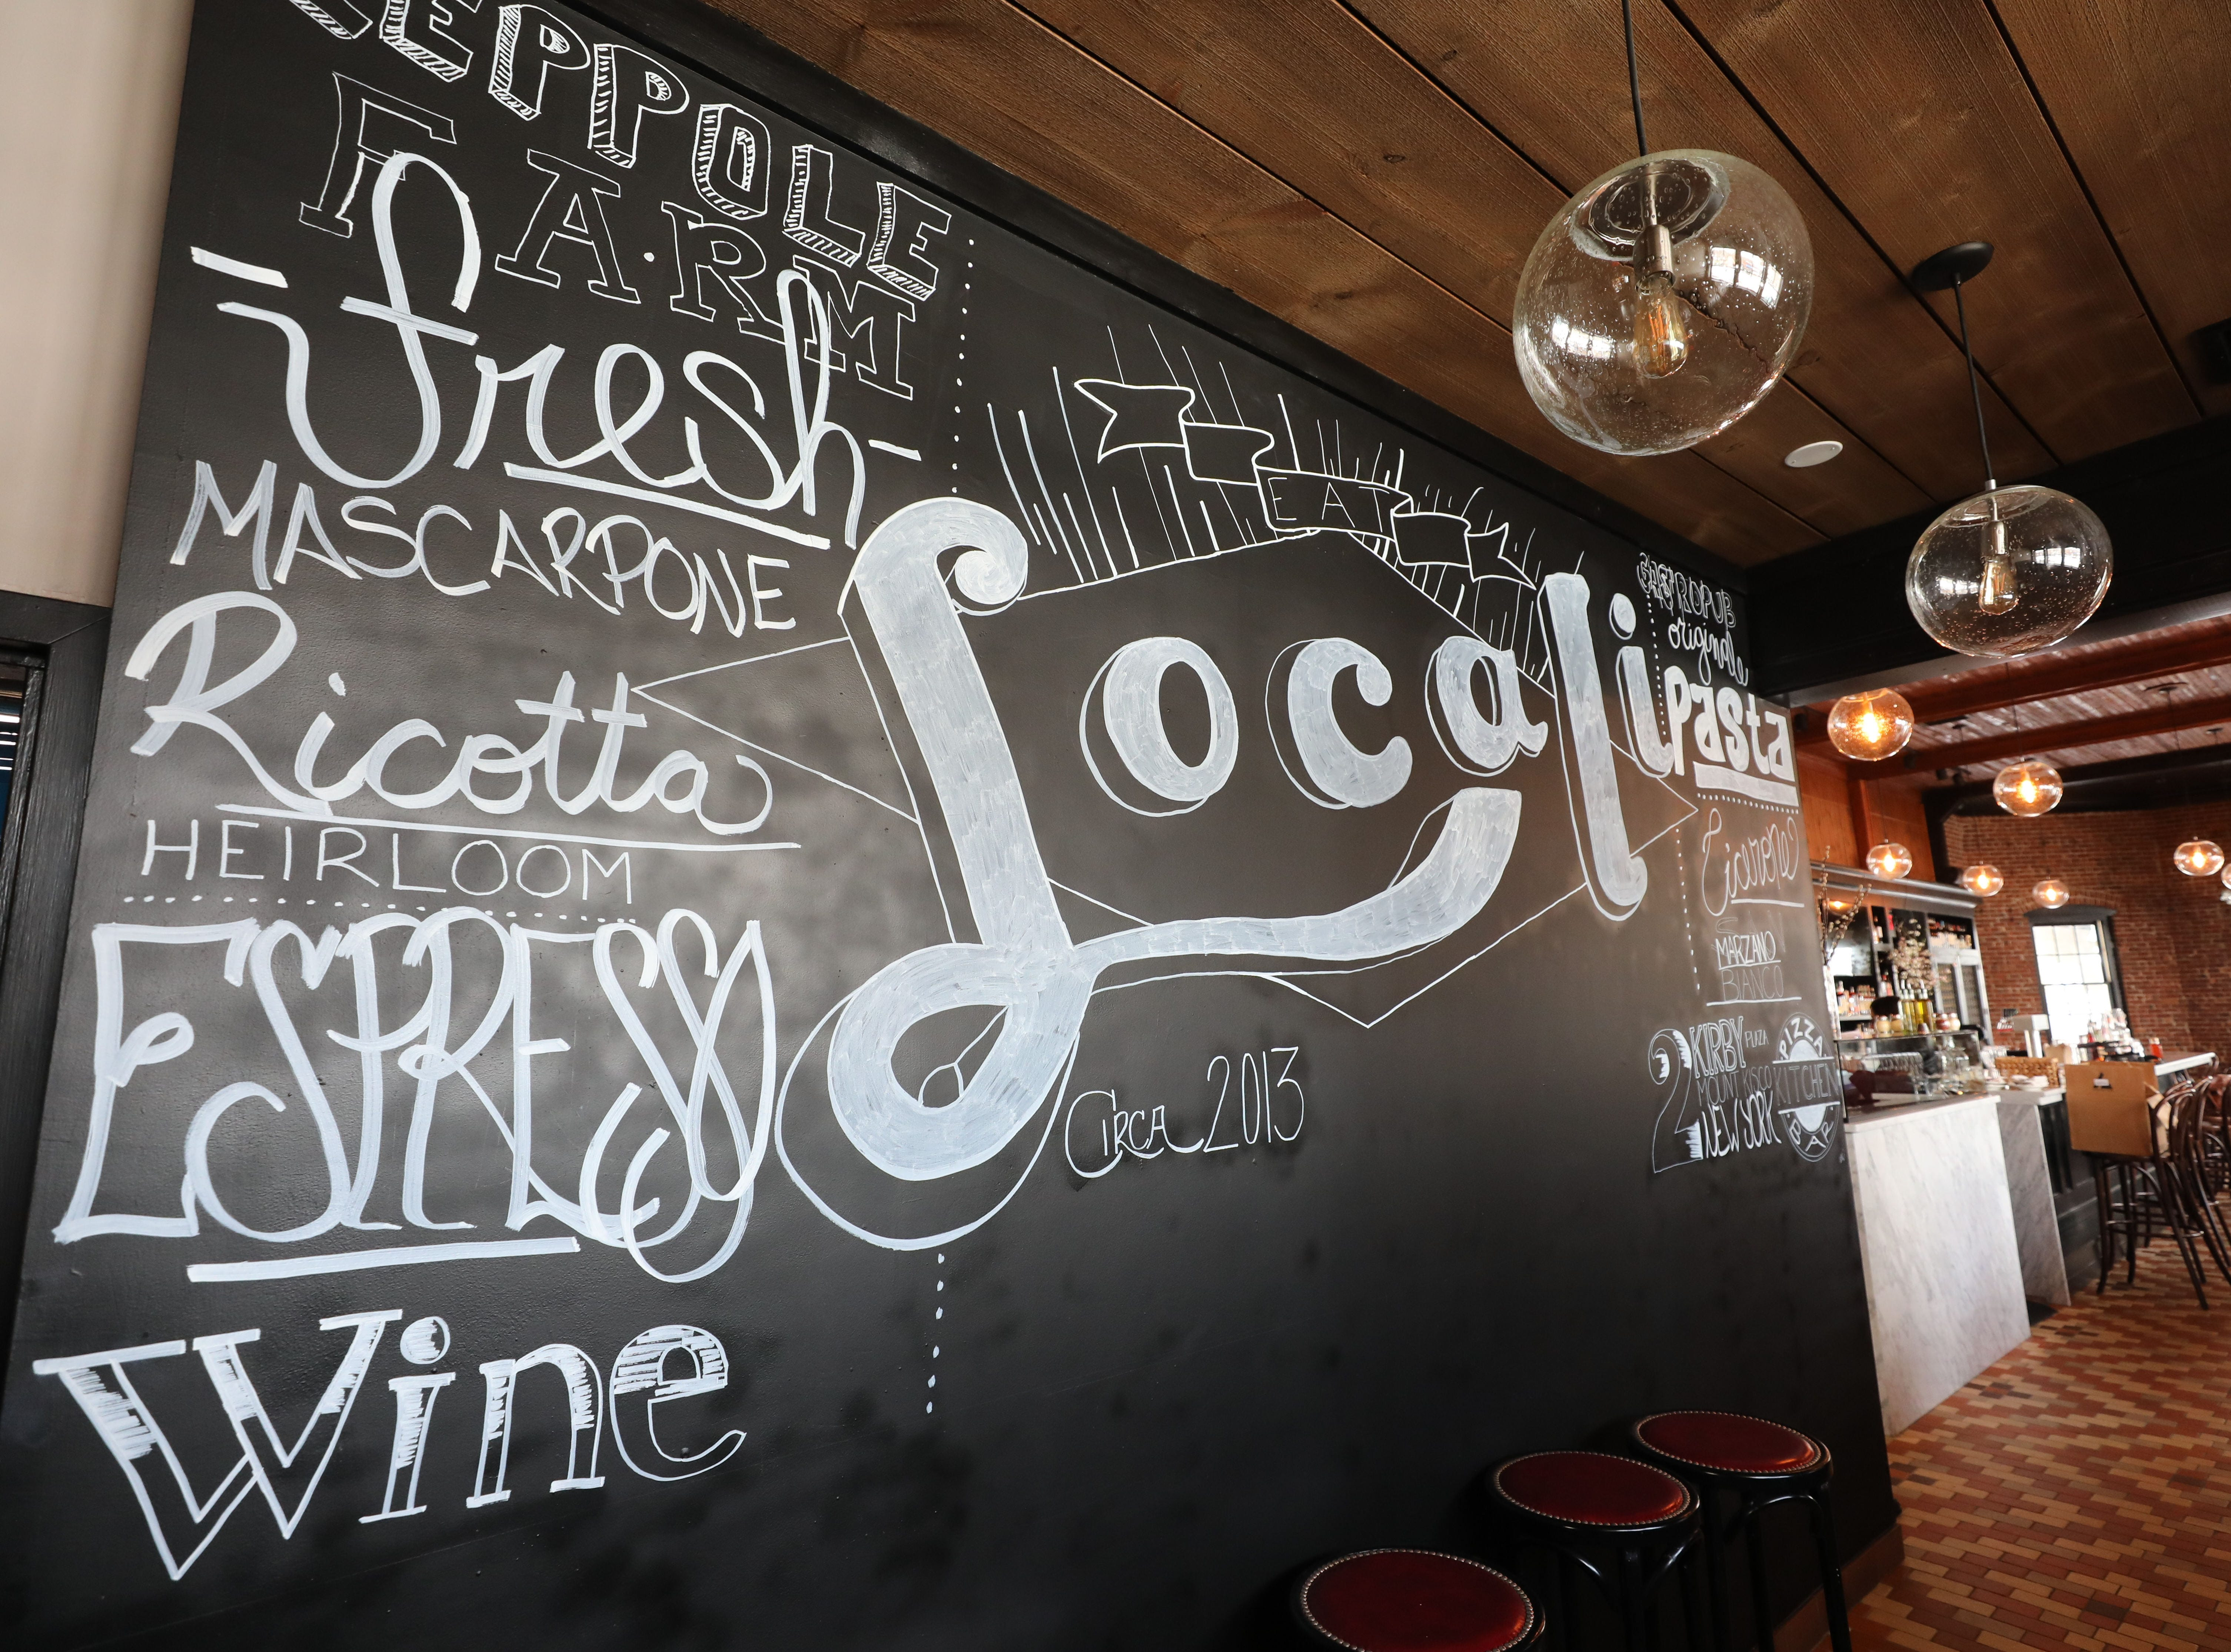 A large chalkboard at Locali Pizza Bar and Kitchen in the Mount Kisco railroad station, March 8, 2019.